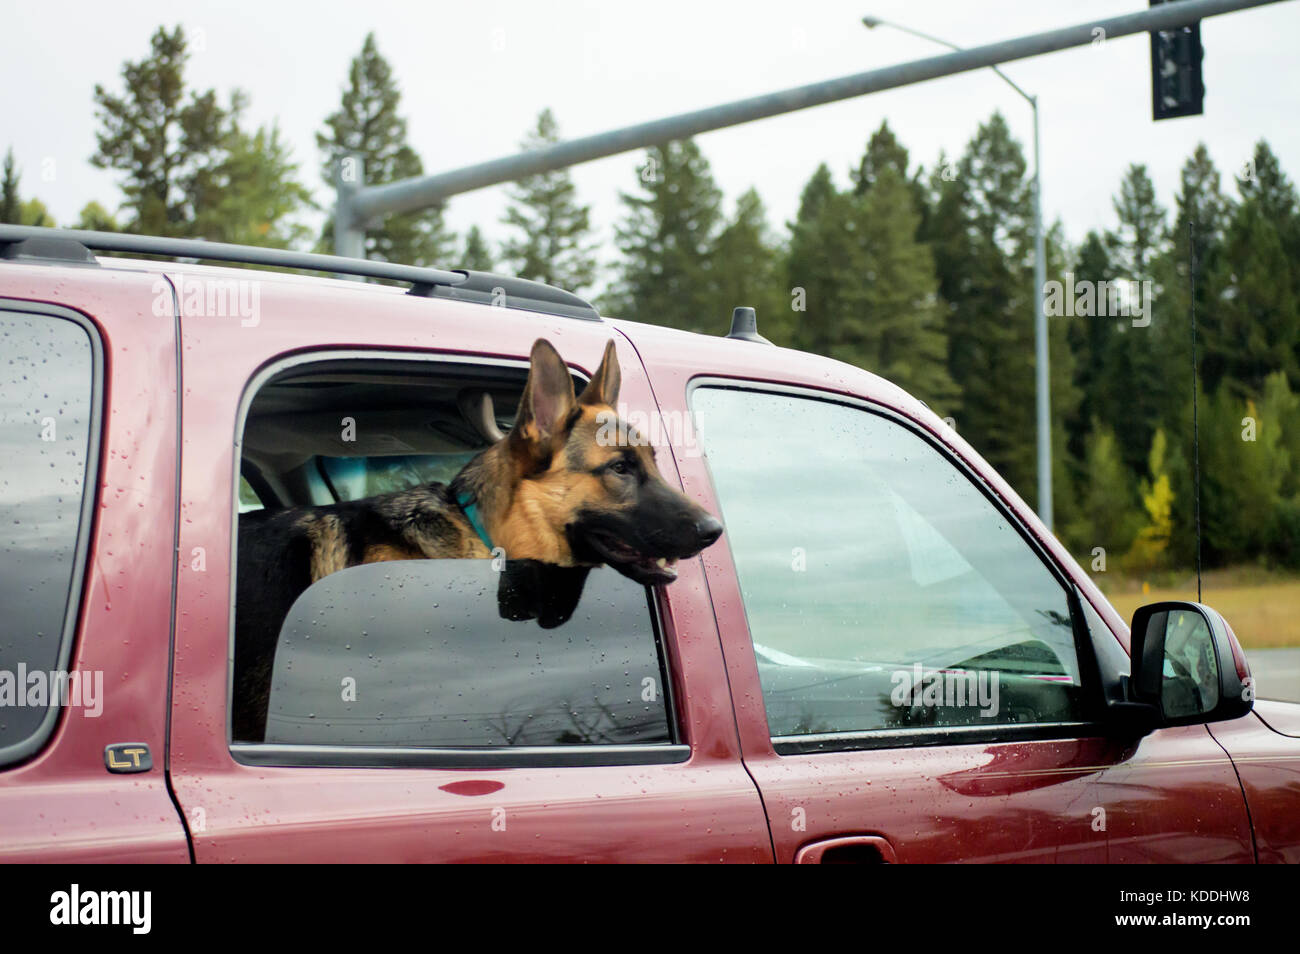 A German Sheppard poking his head out of a car window. - Stock Image